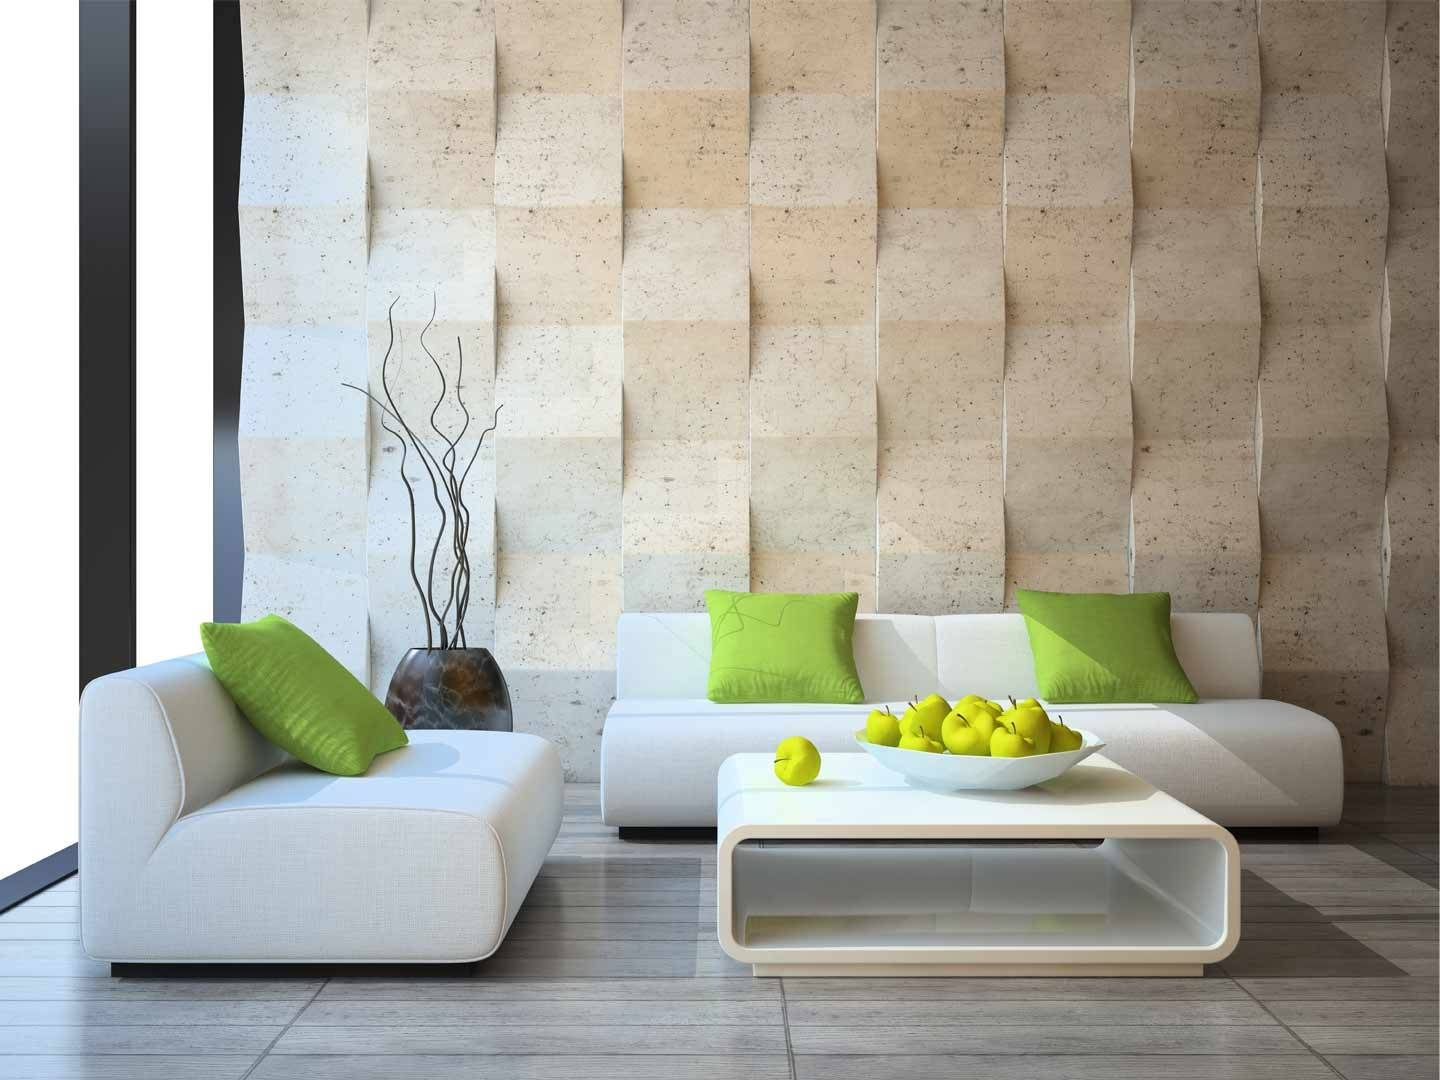 Wall Paneling | 3D Wall Panels | Decorative Wall Panels | Textured Inside Most Recent 3D Wall Covering Panels (View 19 of 20)